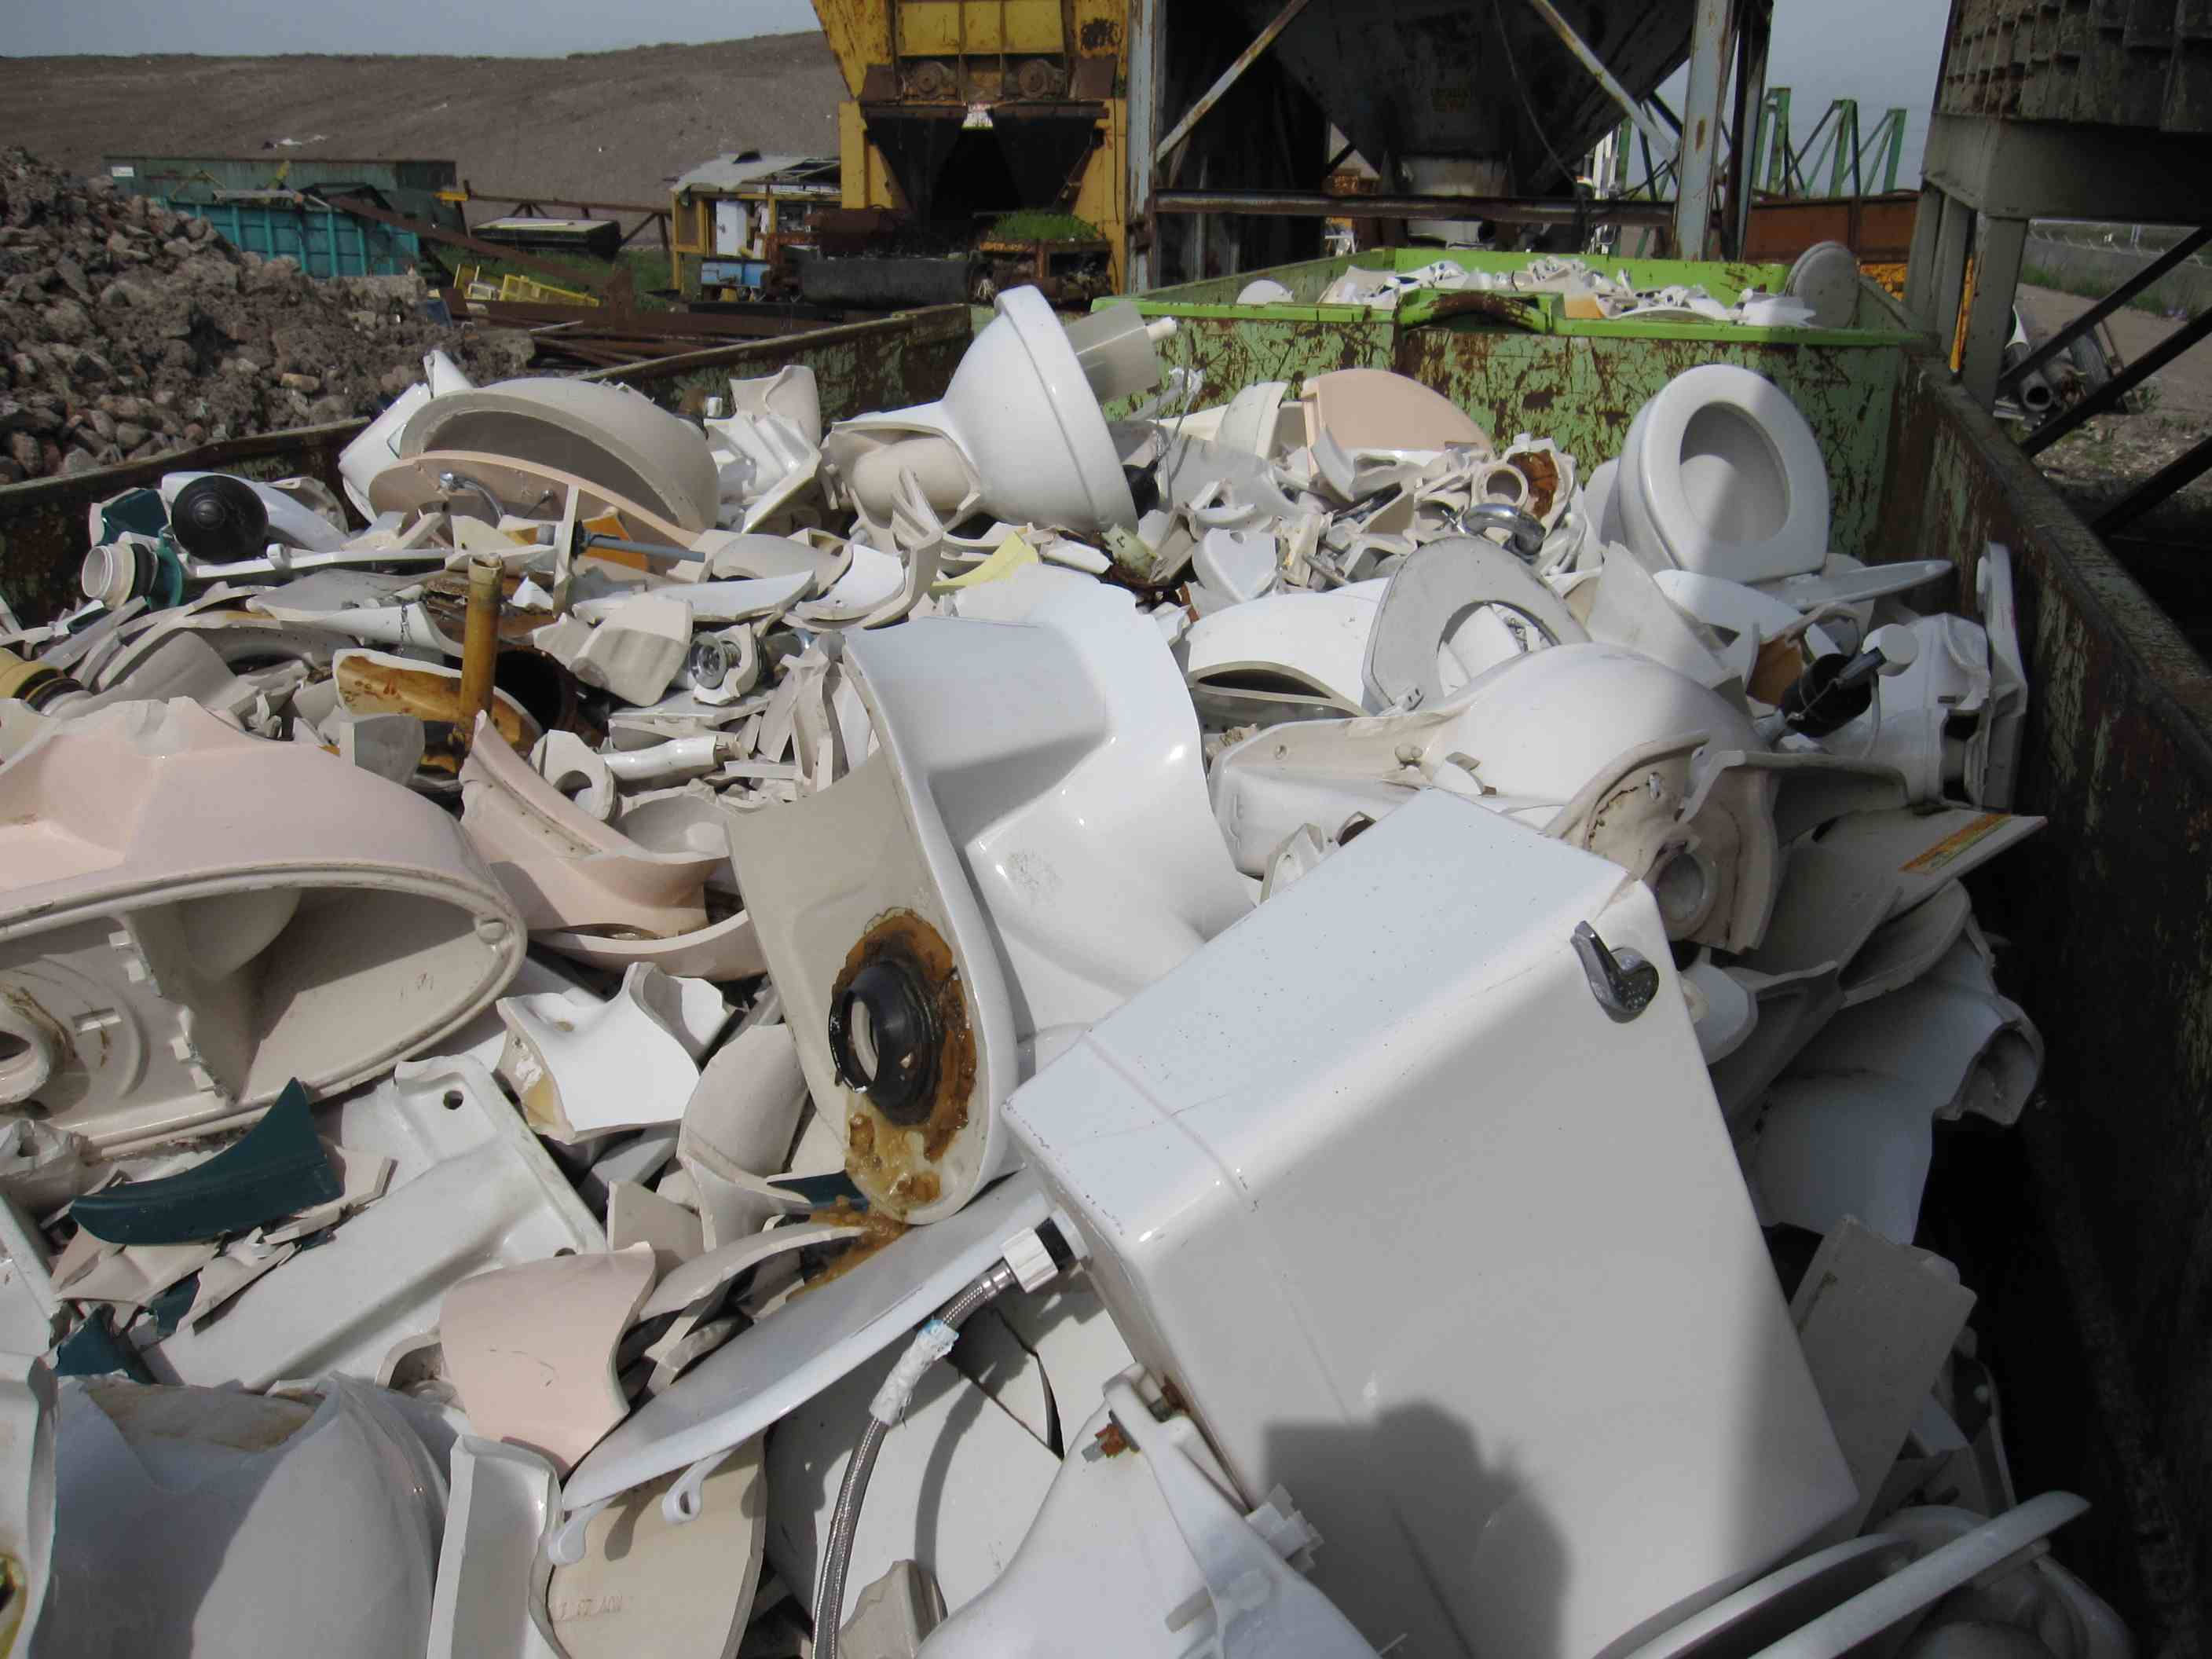 Bins of recycled porcelain at Zanker Hill Road for Tile